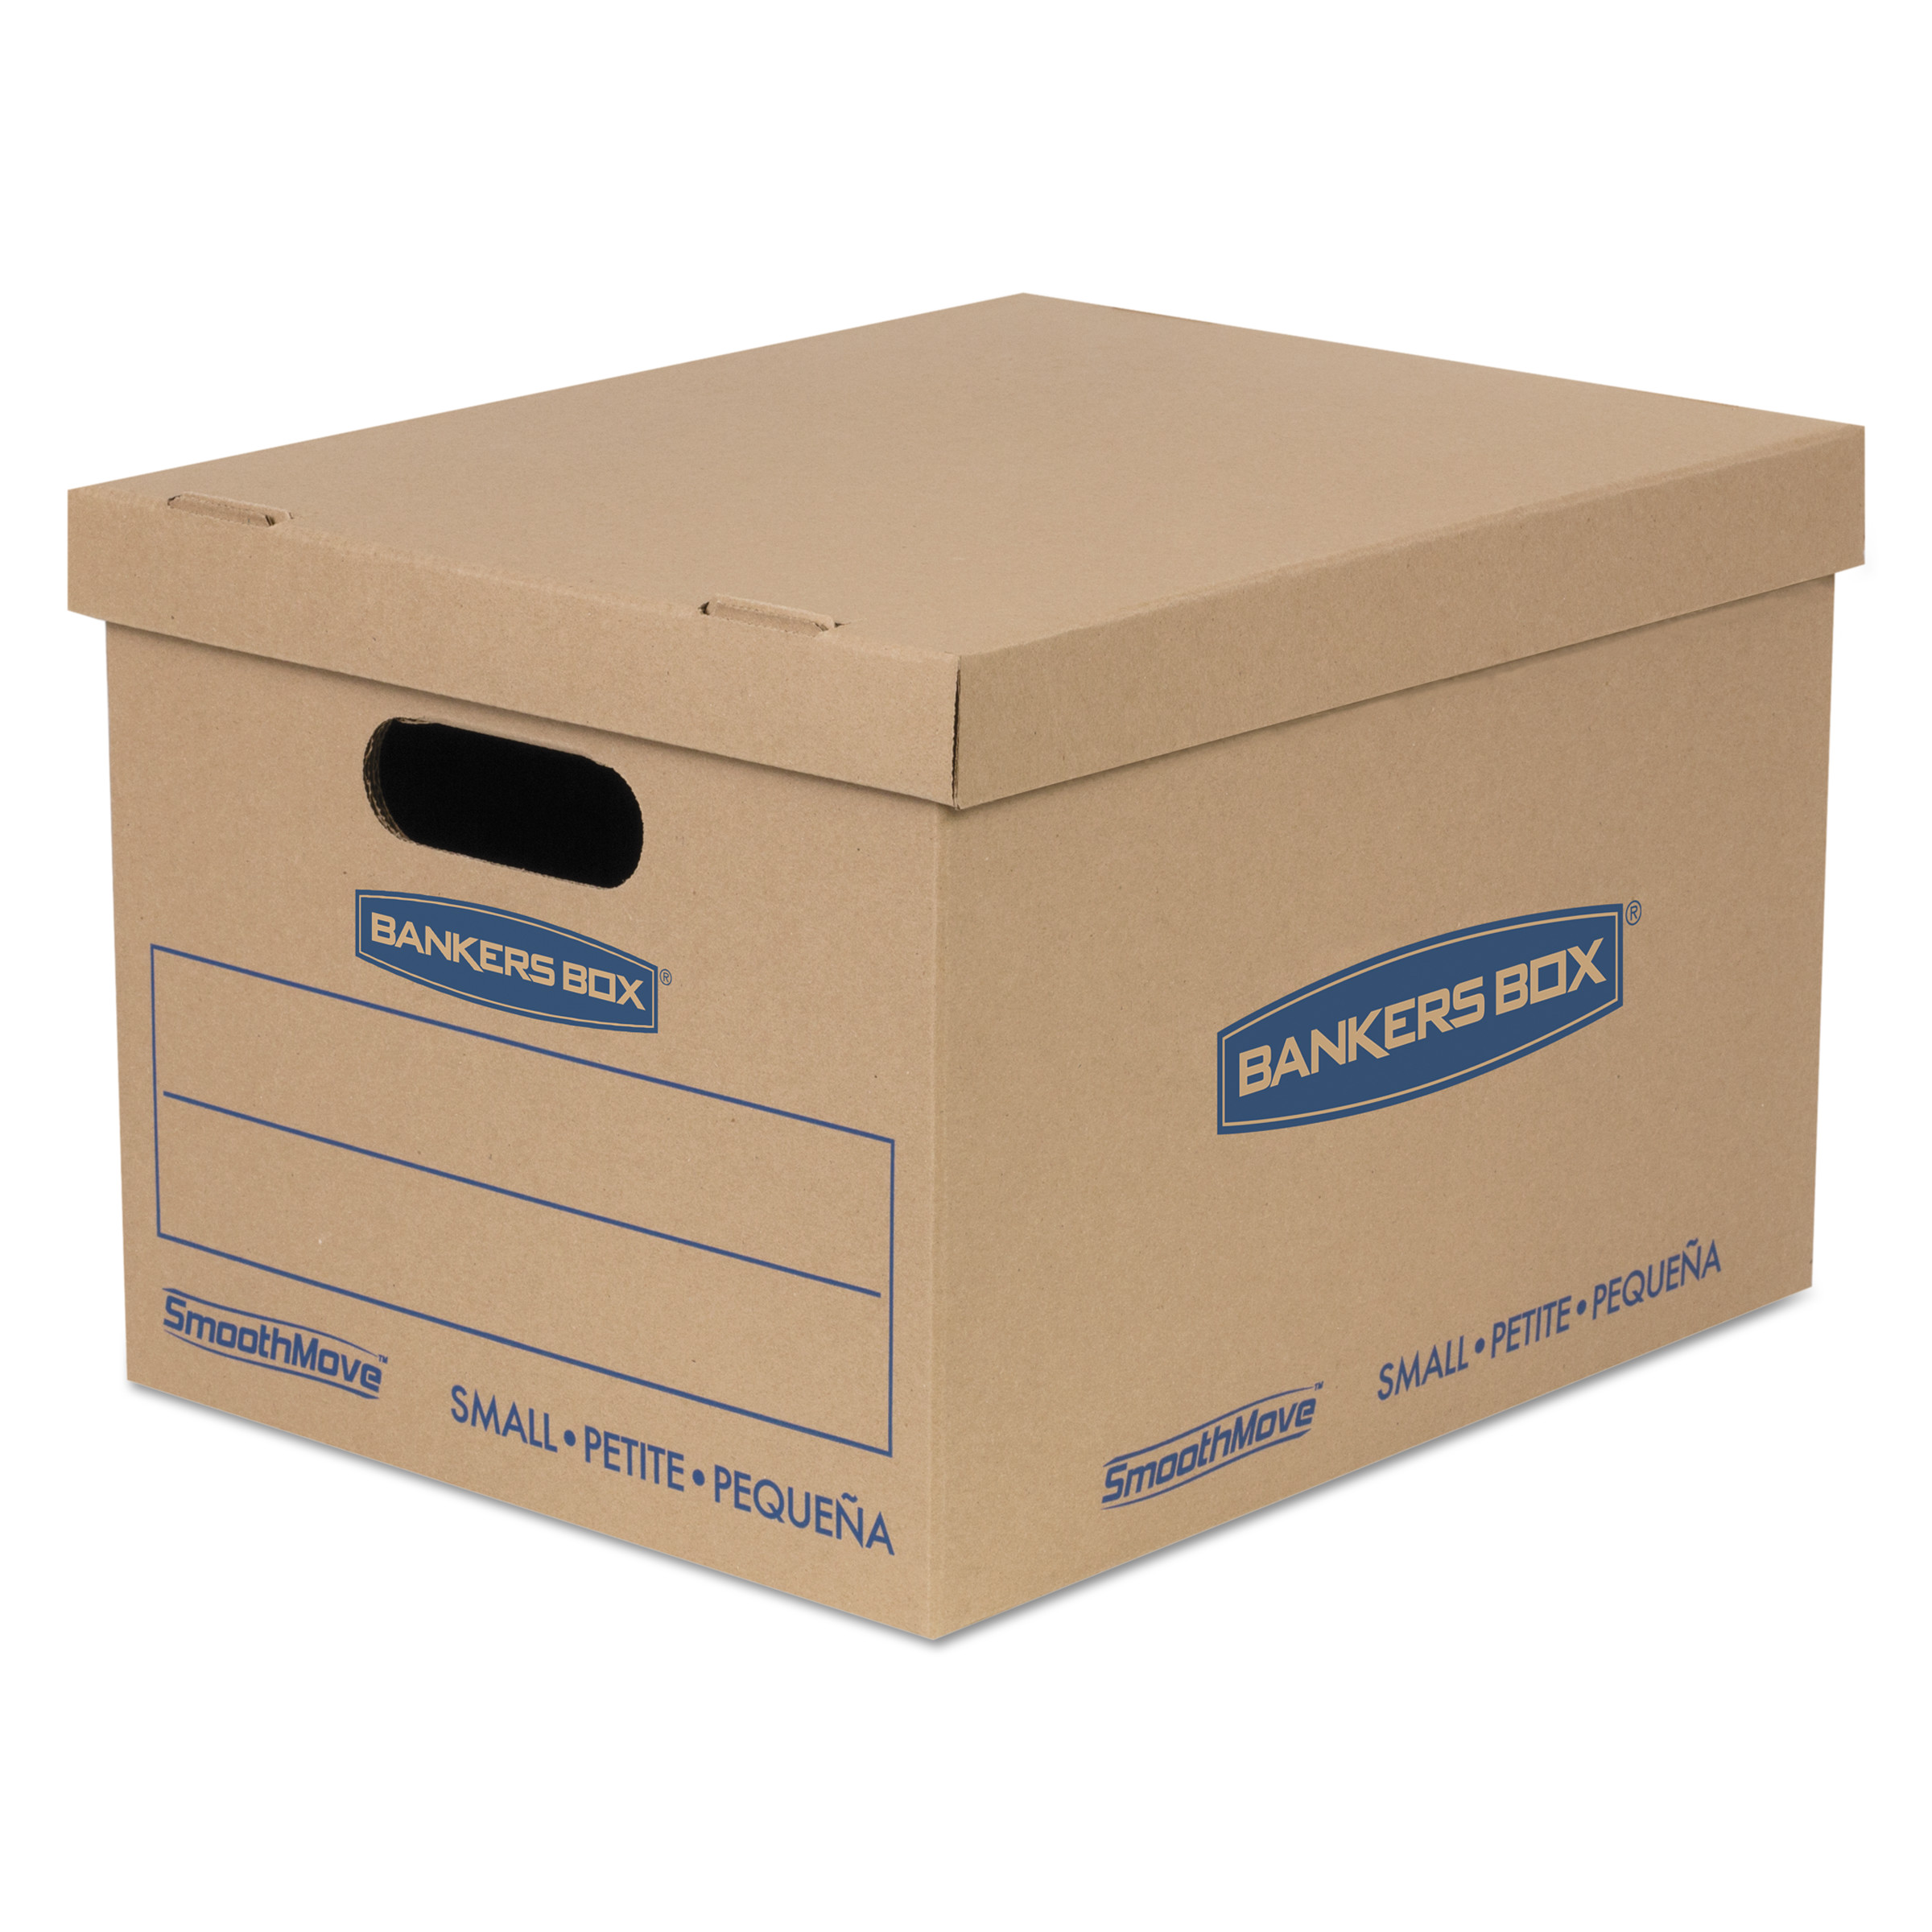 "SmoothMove BankersBox Classic Moving Boxes, Small, 10"" x 12"" x 15"", 10 Count"